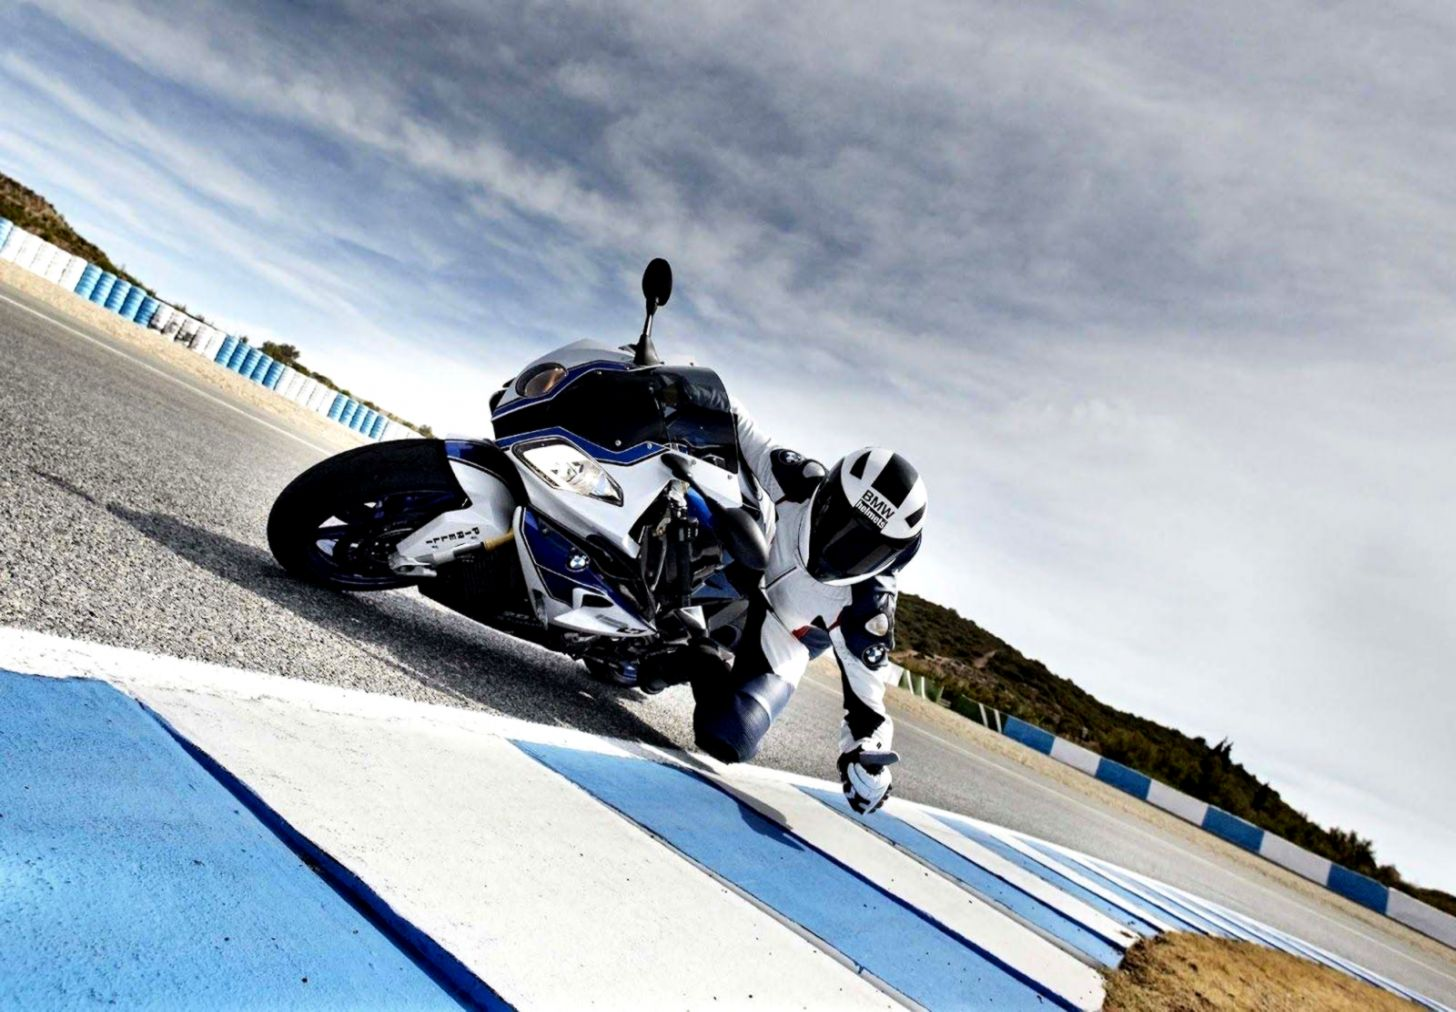 Bmw S1000rr Latest Hd Wallpapers Free Download Wallpapers Sinaga